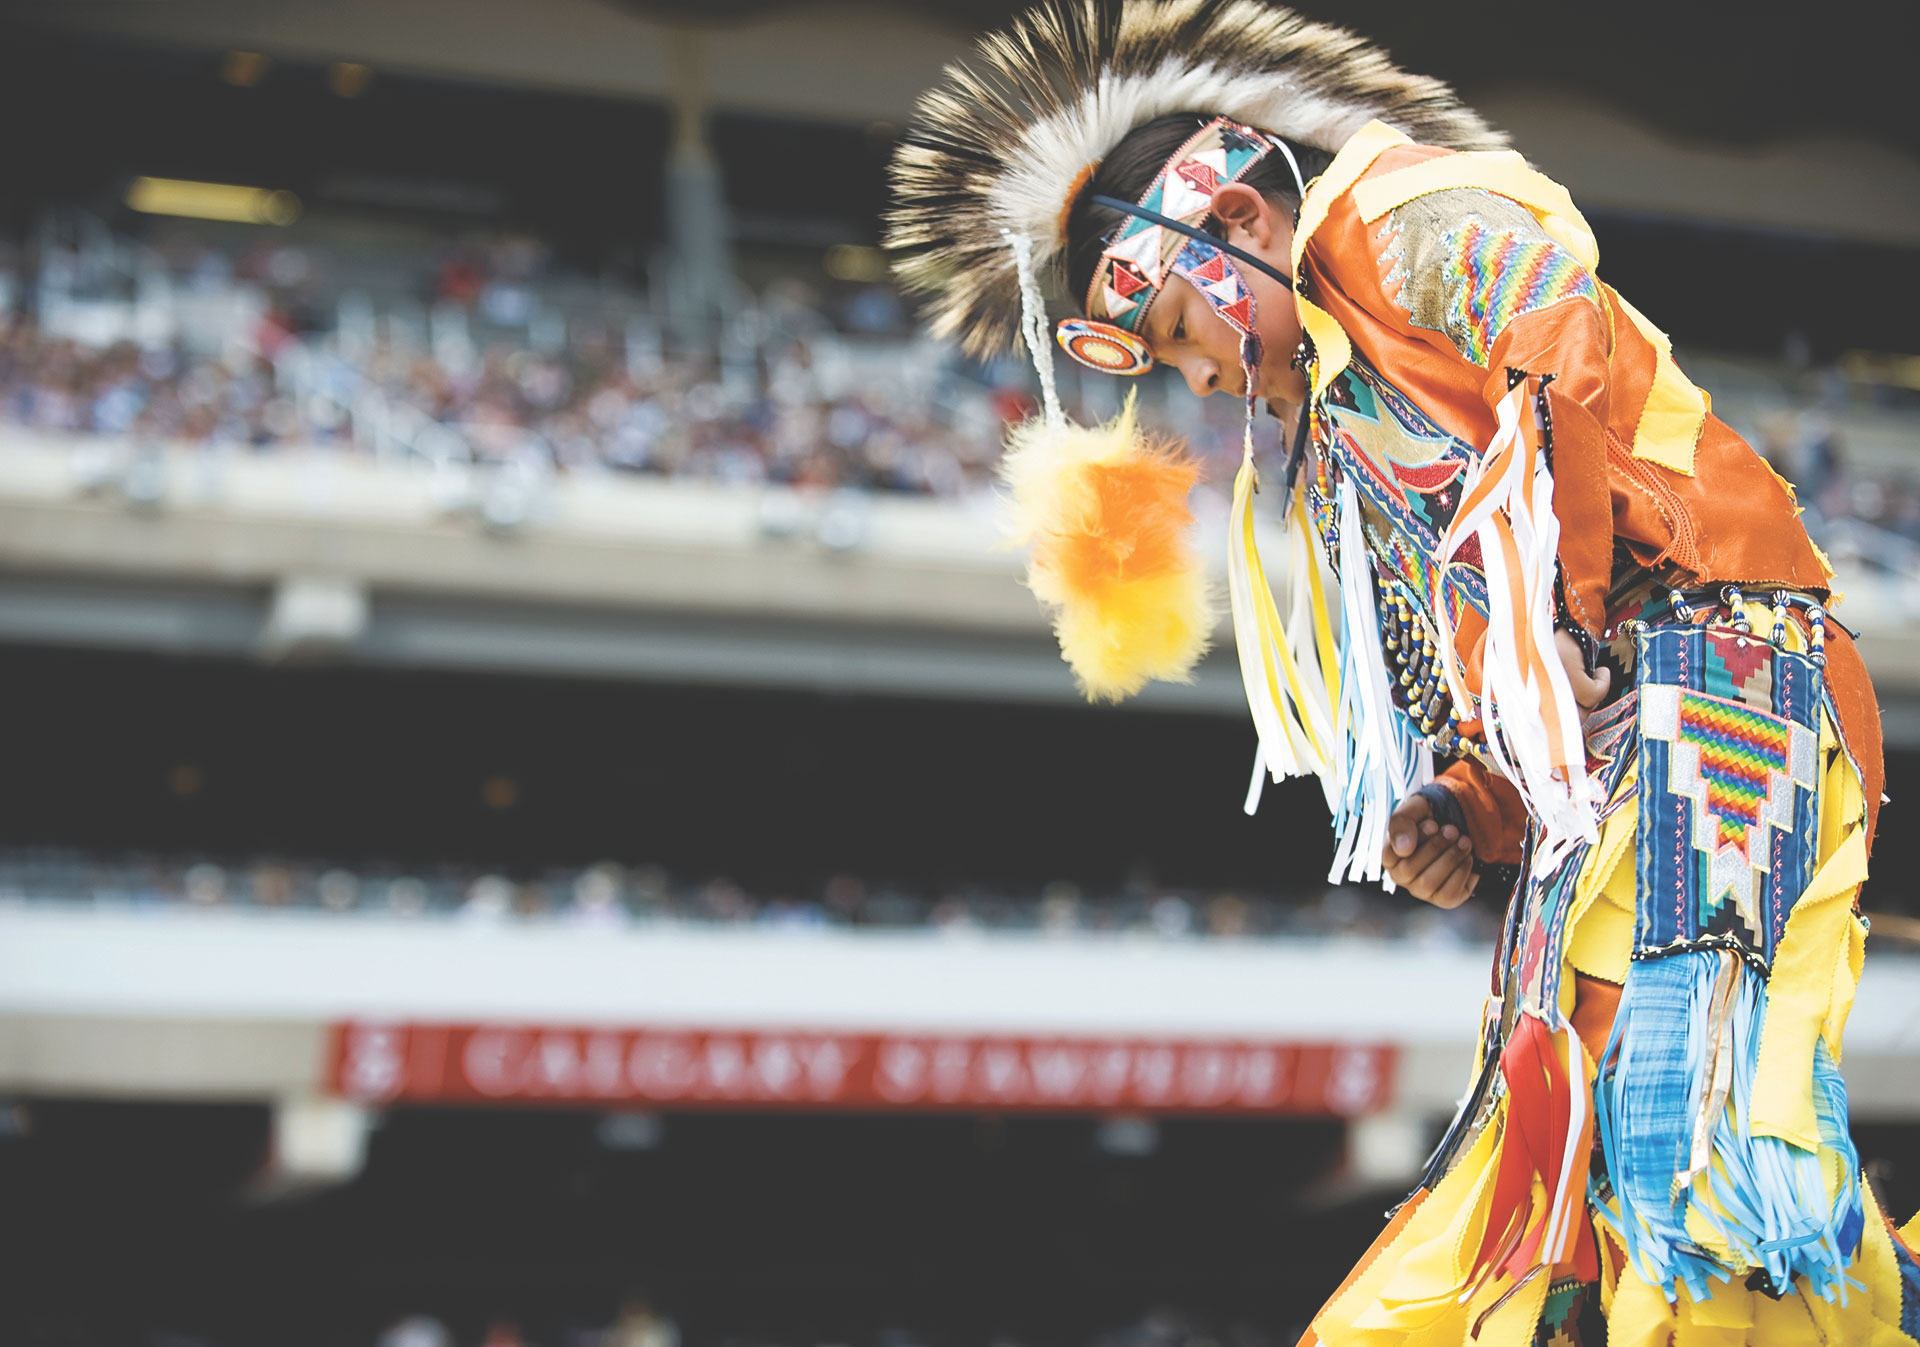 Experience First Nations culture at the Calgary Stampede.